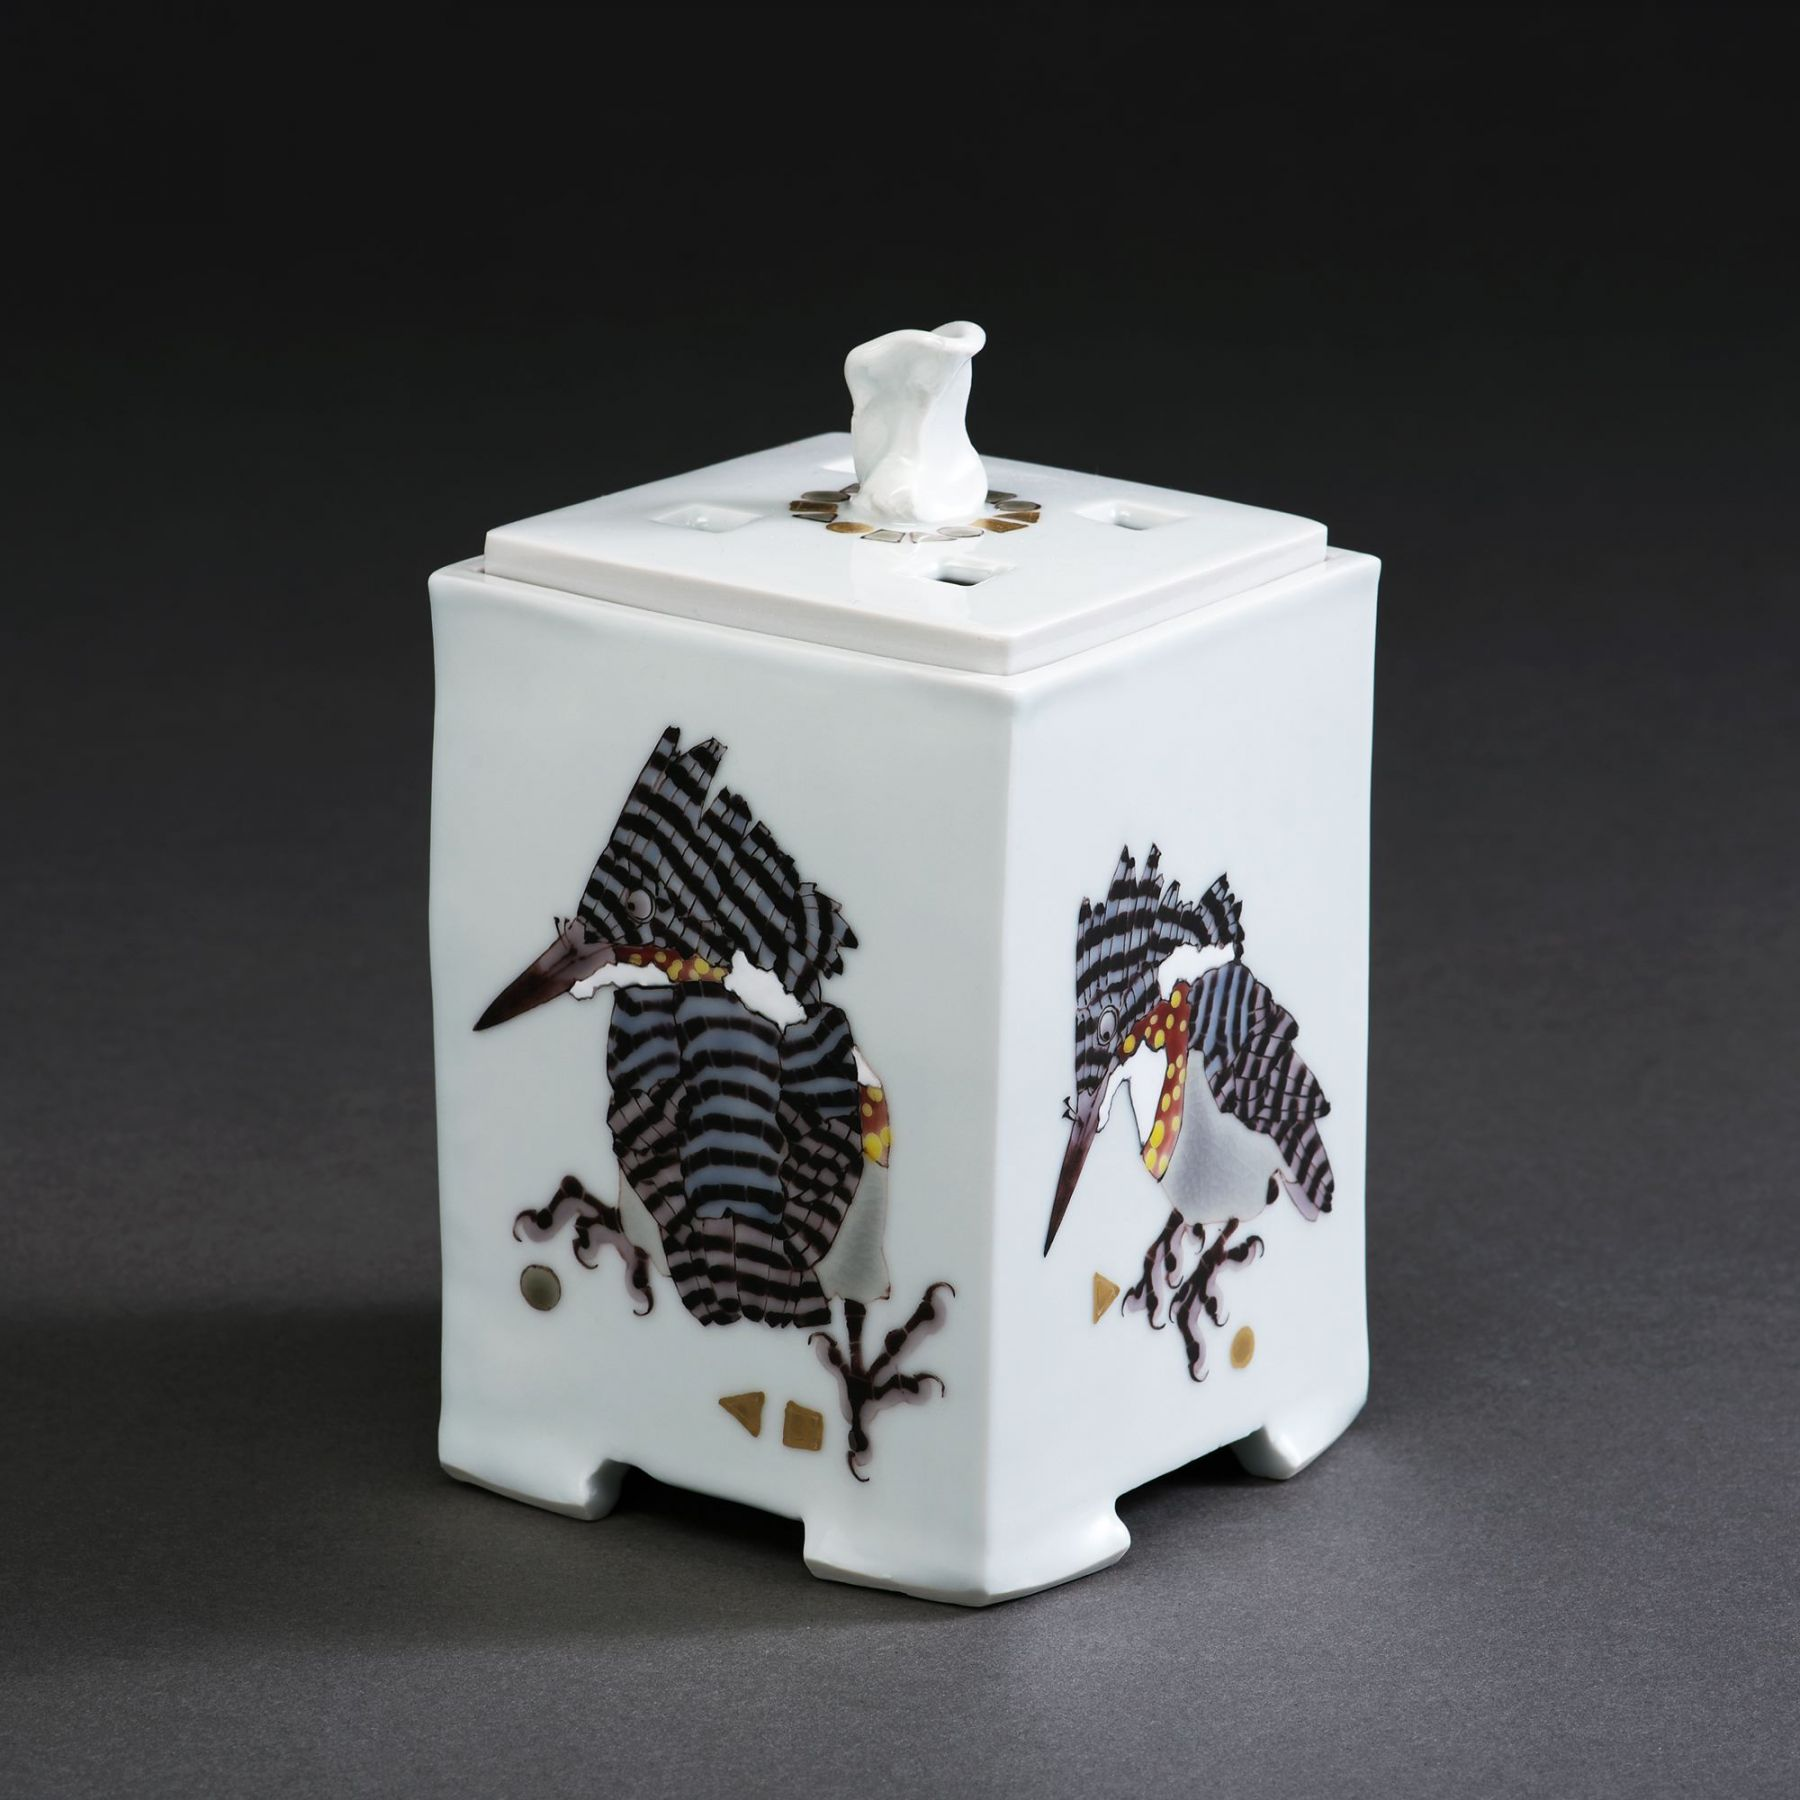 Square incense burner with matching perforated cover depicting four greater pied kingfishers on each side, 2017